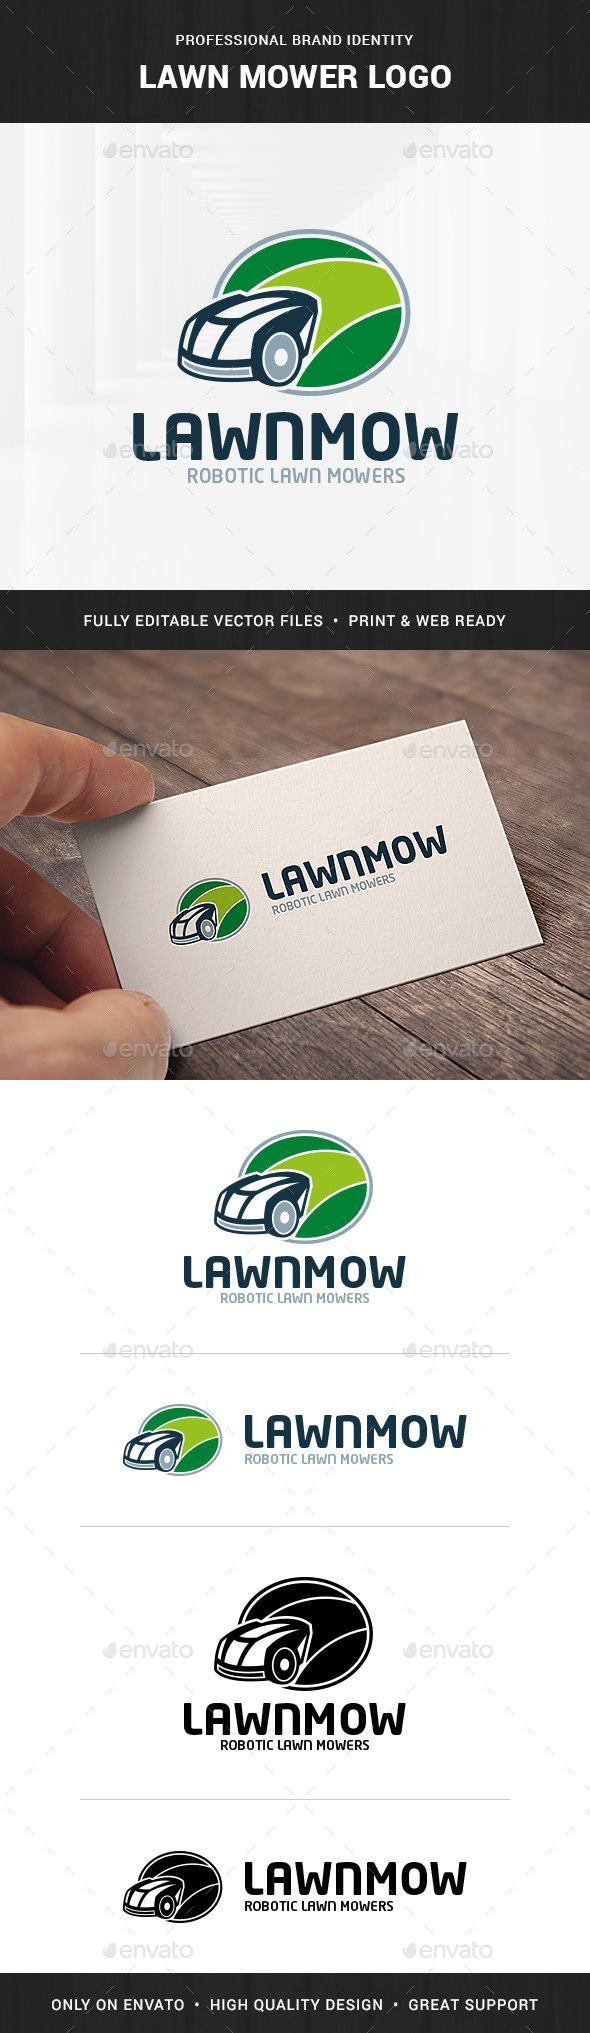 Lawn Mower Logo Template - Objects Logo Templates